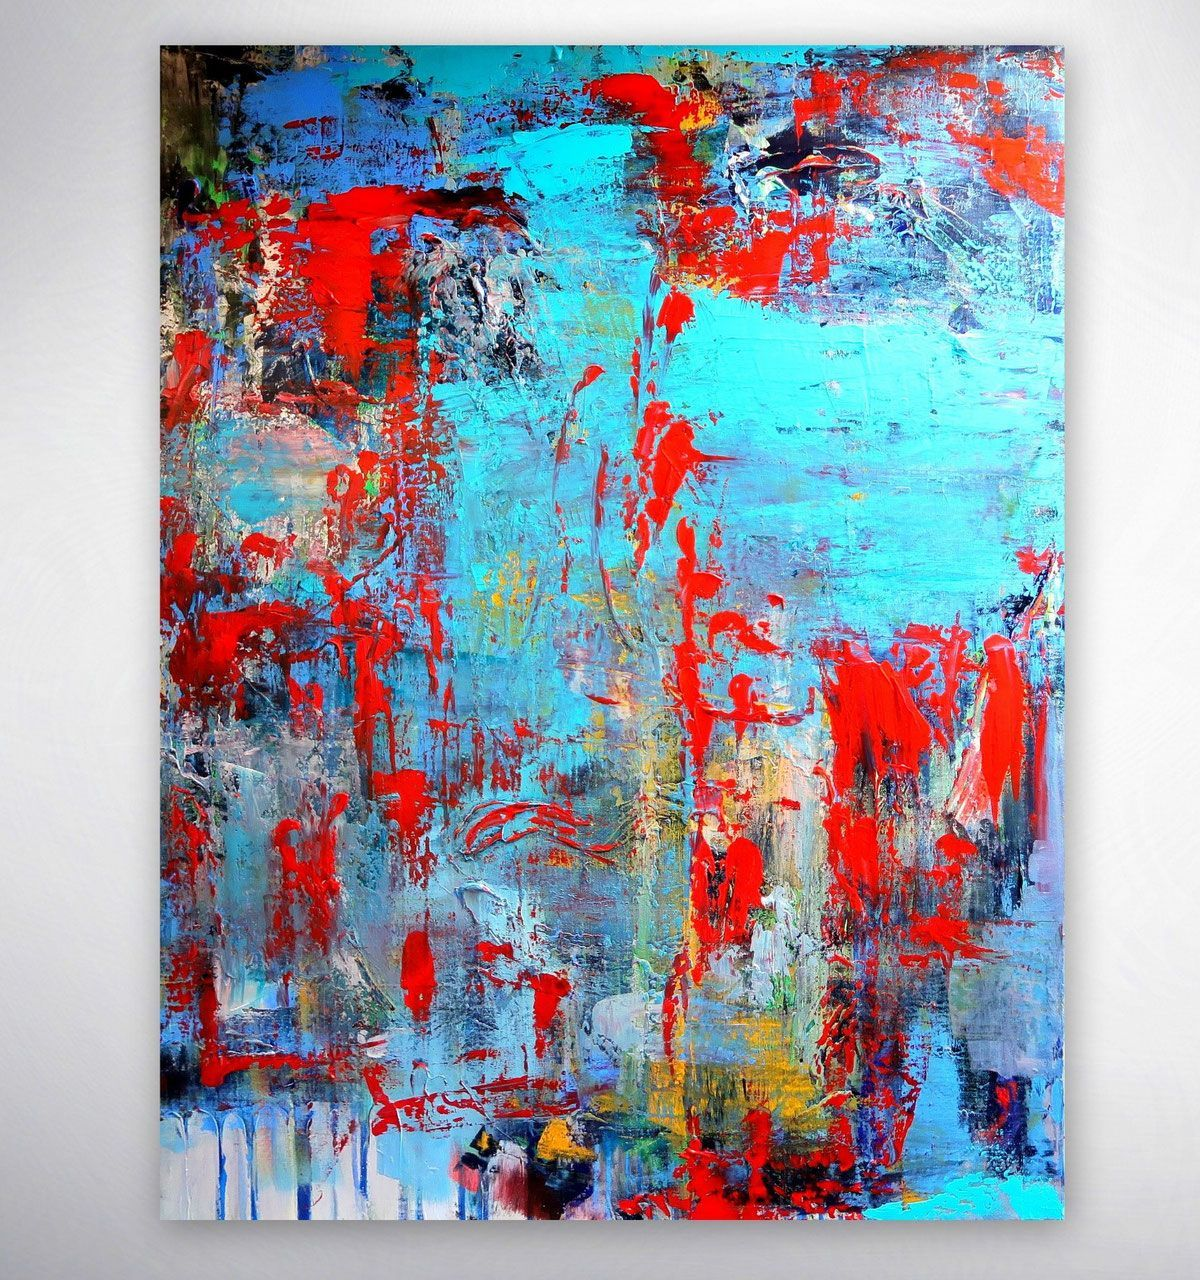 Bild Bunt Modernes Acrylbild Gemälde Originale Unikate Bilder Modern Ab In 2021 Abstract Canvas Art Abstract Art Painting Abstract